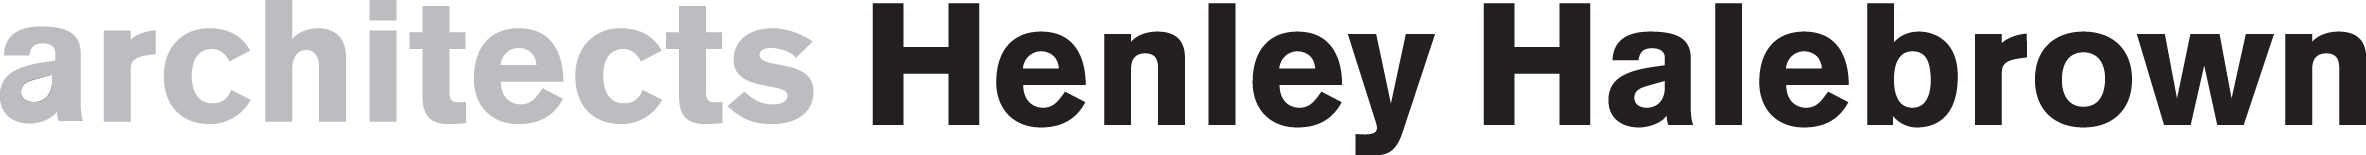 Henley Halebrown Architects logo